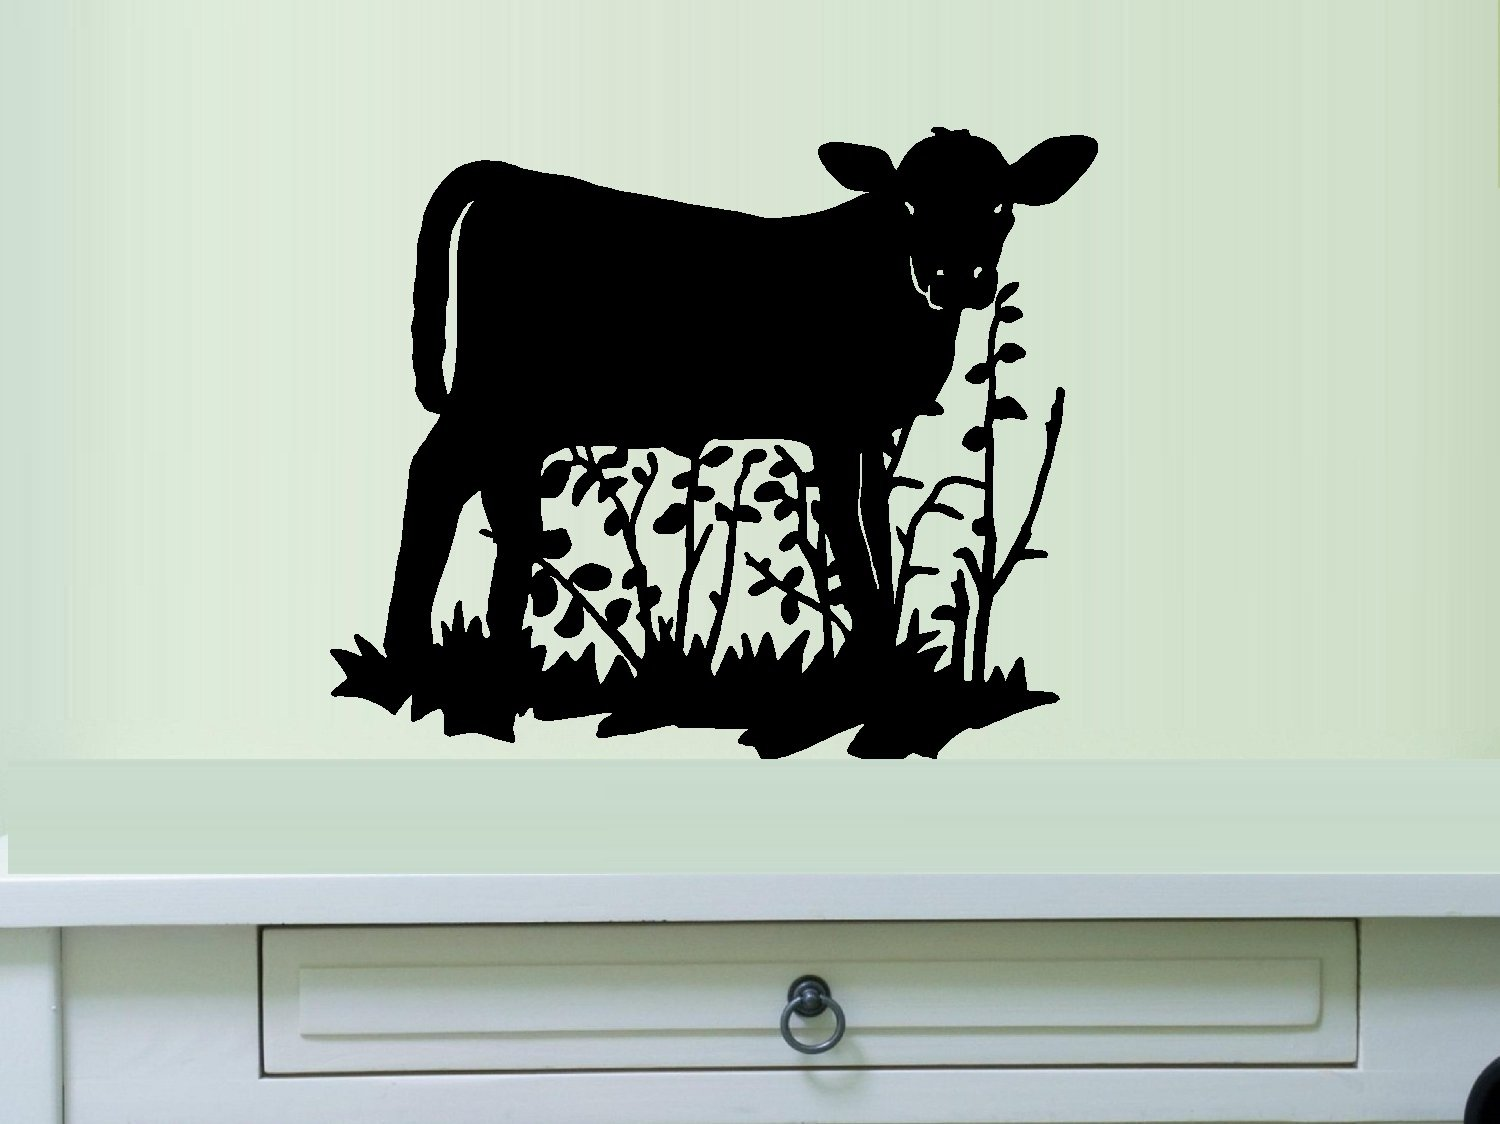 Wall or Window Decal 13 x 16 Starlight Decals Cow on Grass Black By